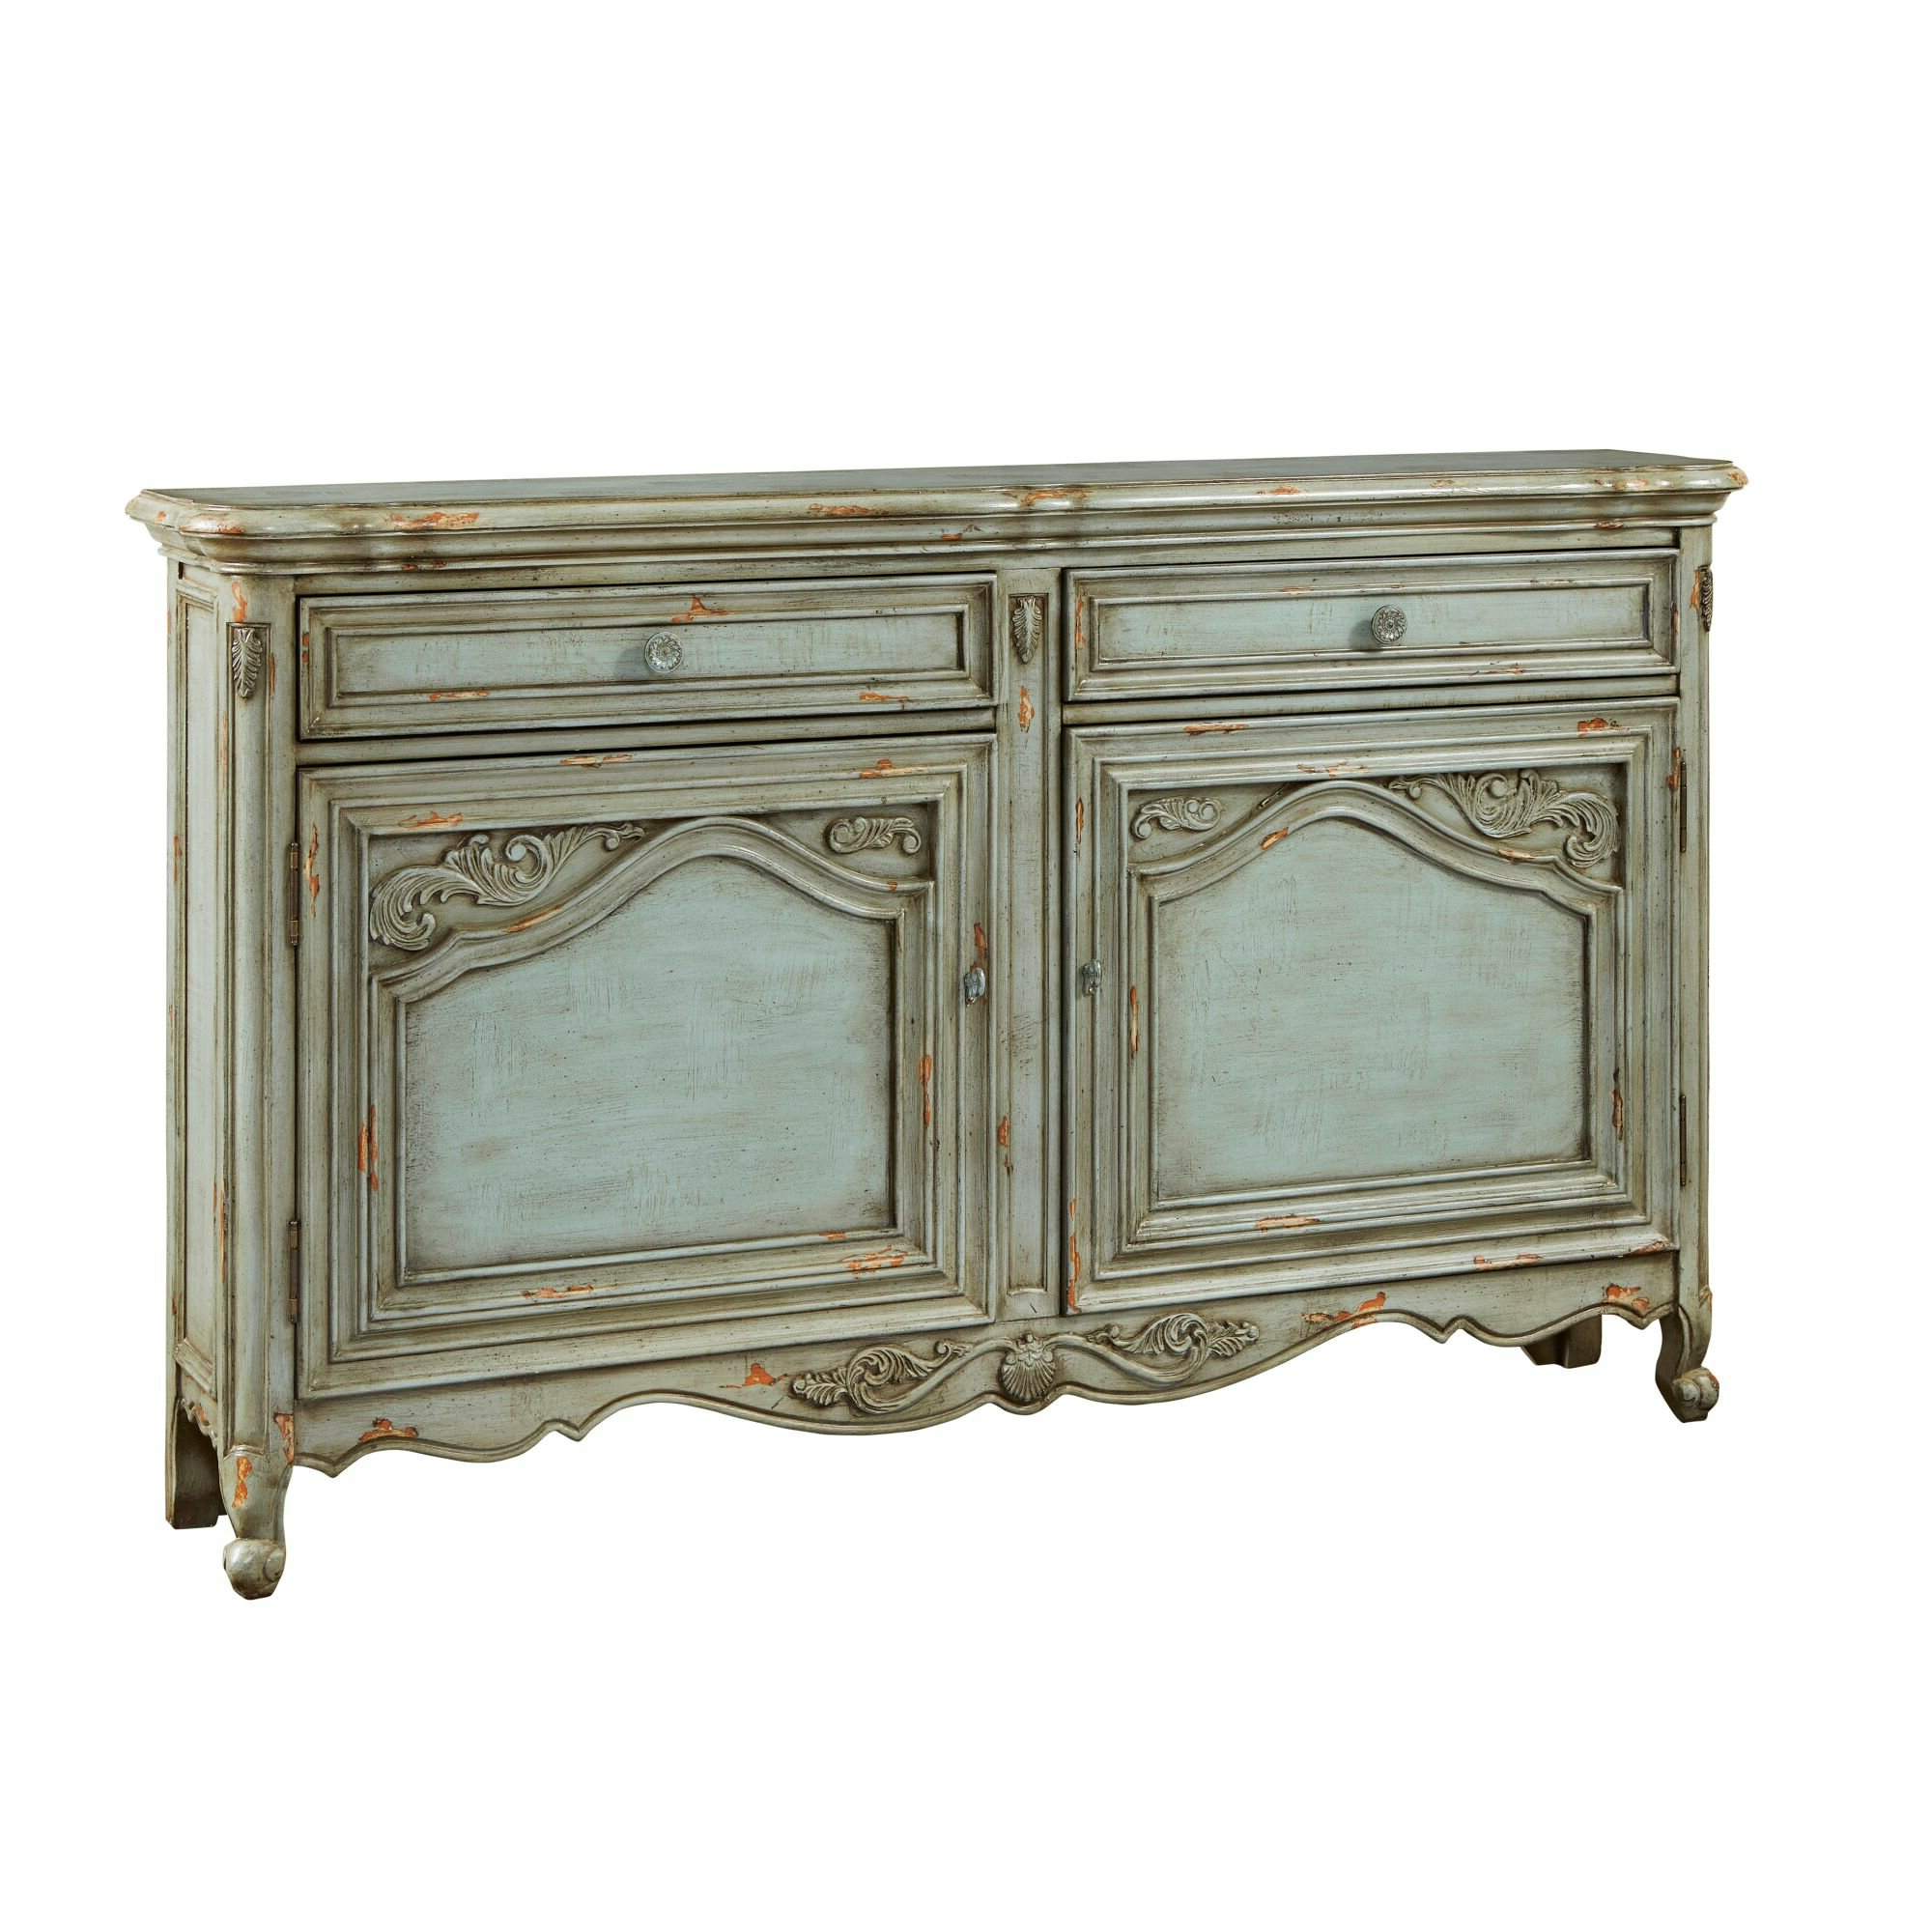 Farmhouse & Rustic Distressed Finish Sideboards & Buffets Intended For Best And Newest Seiling Sideboards (View 16 of 20)